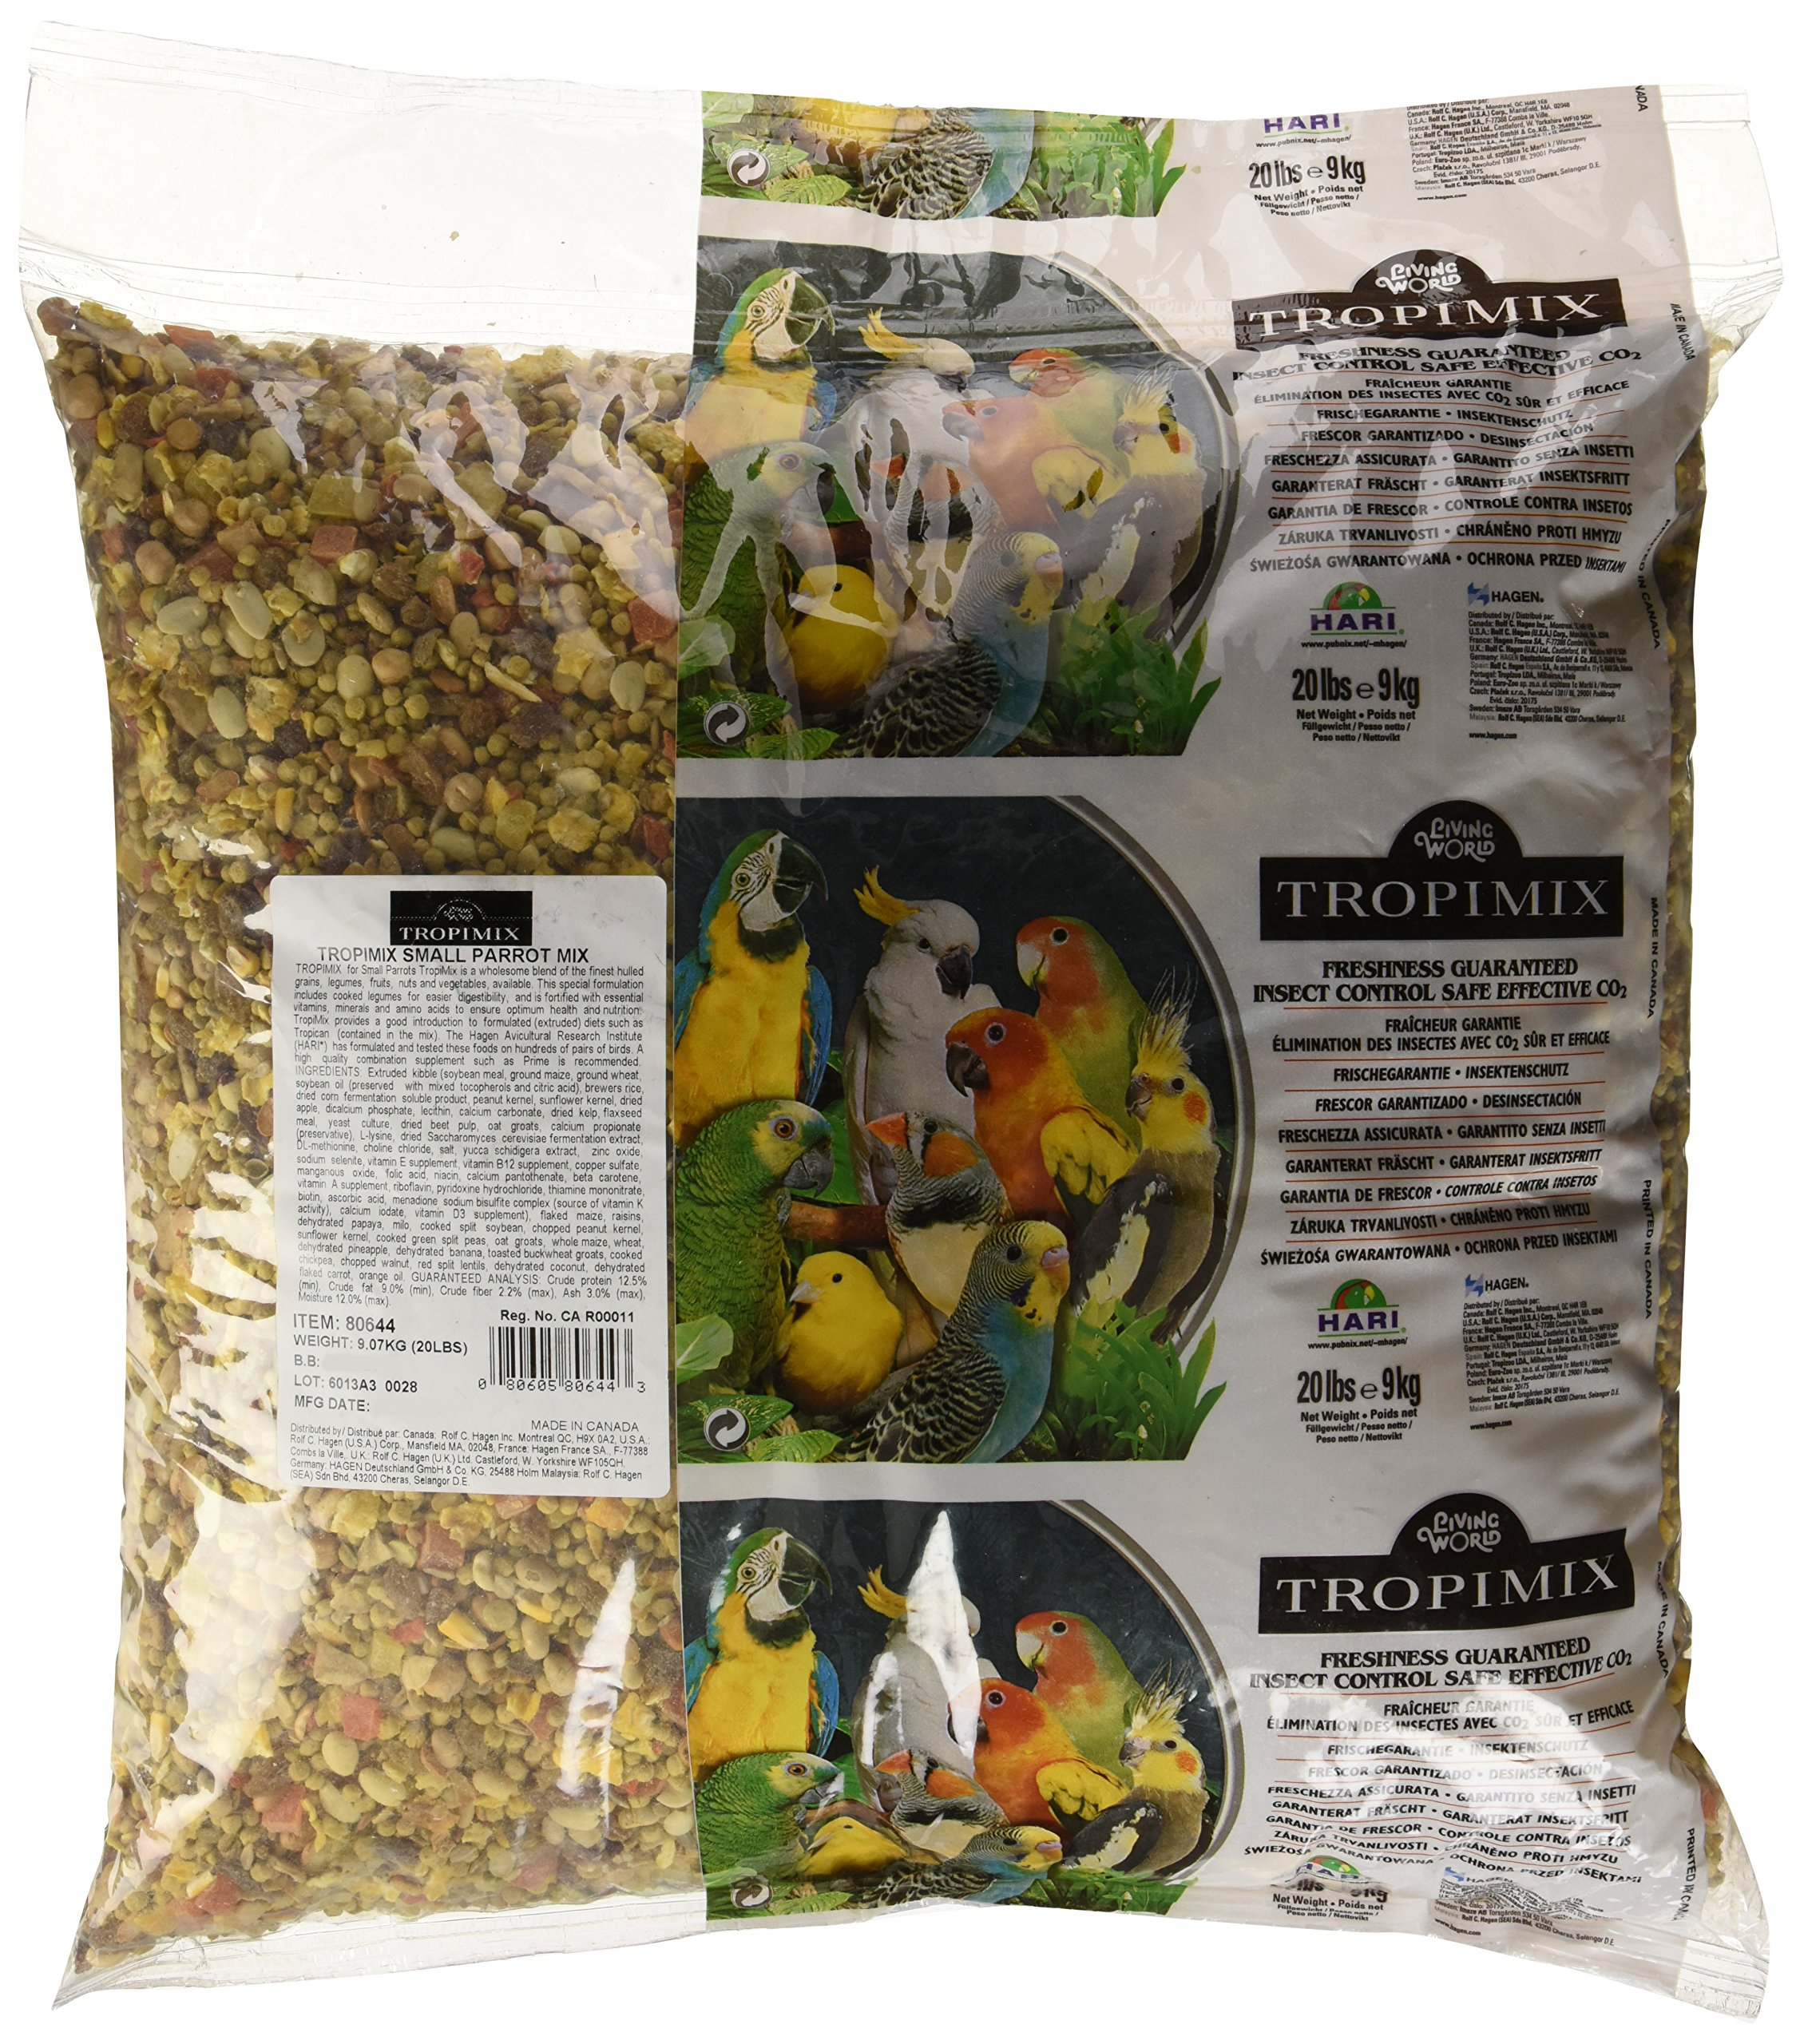 Tropimix Small Parrot Food, Healthy Blend of Grains, Legumes, Fruits, Nuts and Vegetables, 20 lb Bag by Hari